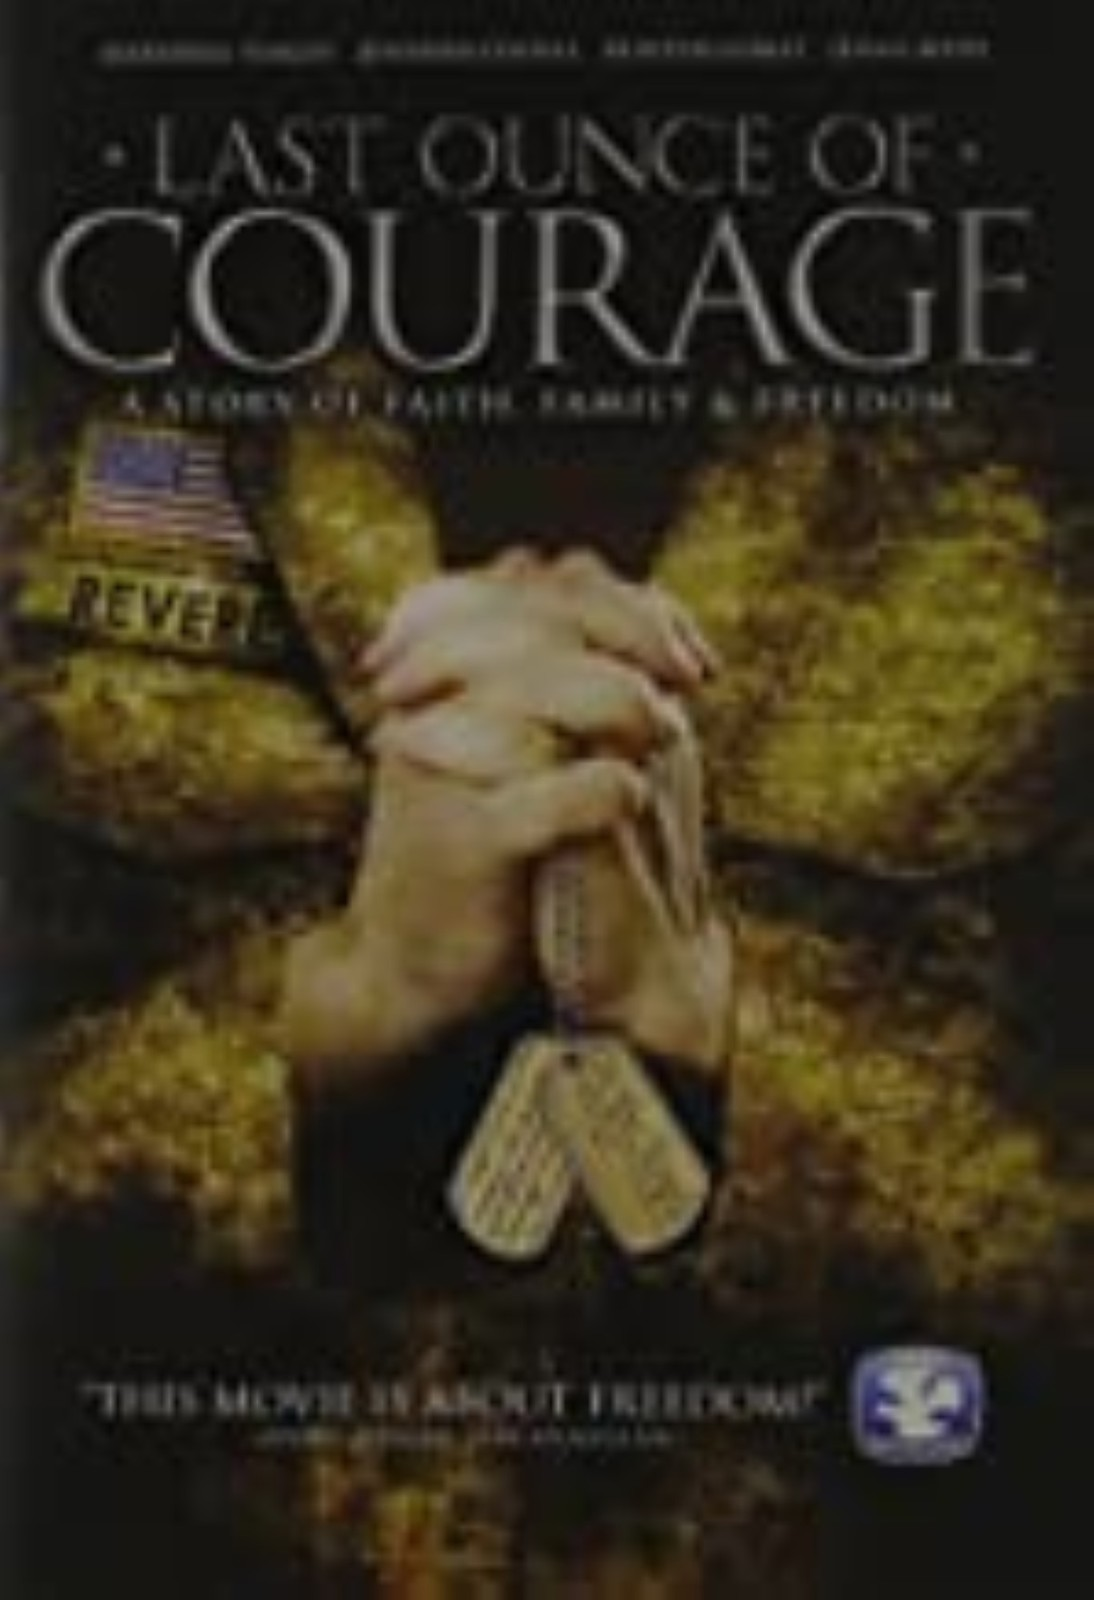 Last Ounce of Courage Dvd